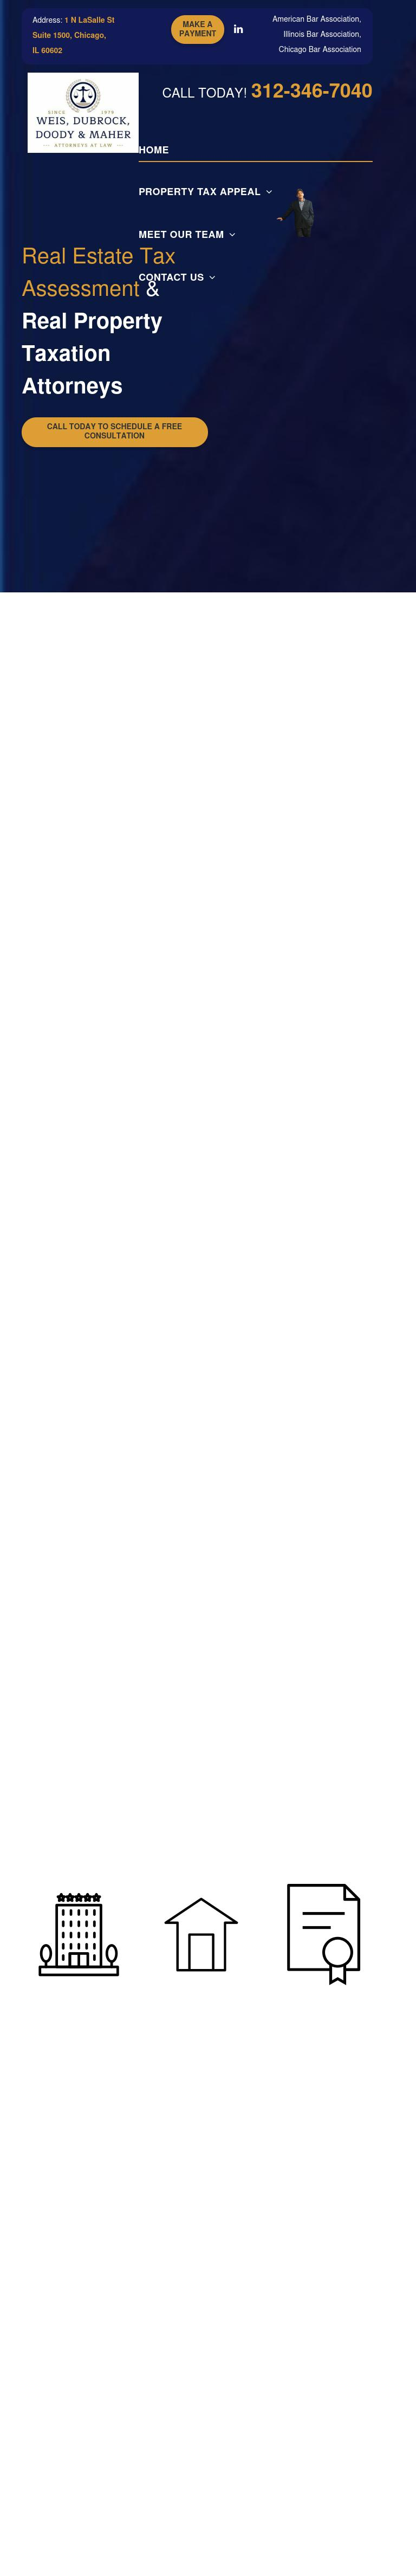 Weis, Dubrock, Doody & Maher - Chicago IL Lawyers